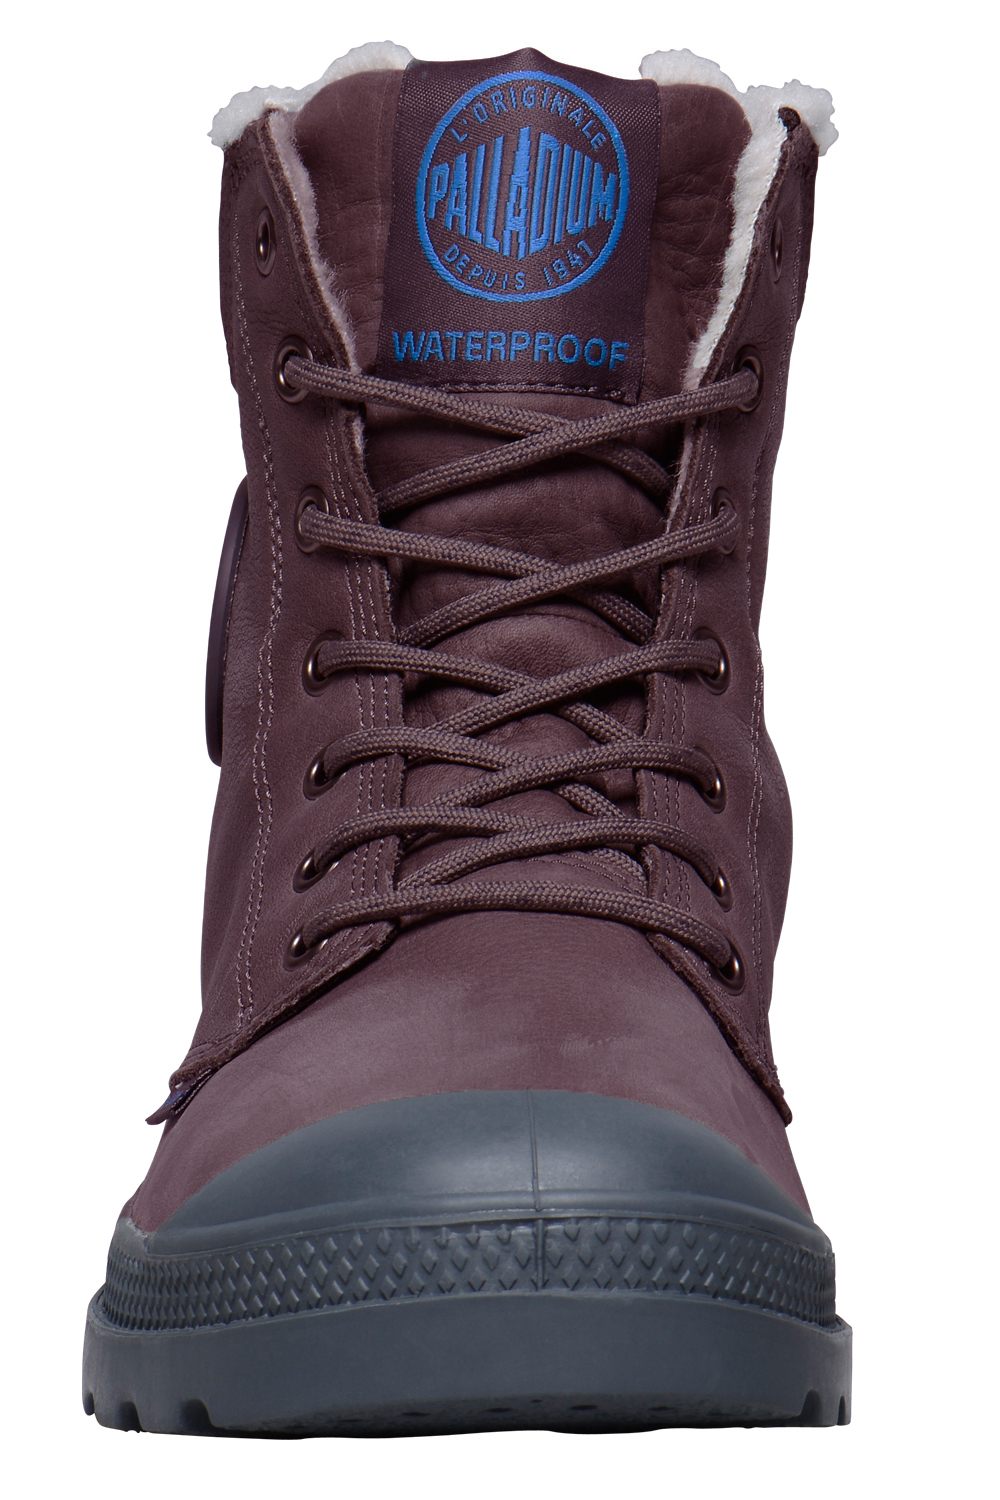 Palladium-Mens-Pampa-Sport-Cuff-Waterproof-Suede-Leather-Shoe-Wool-Lined-Boots thumbnail 19